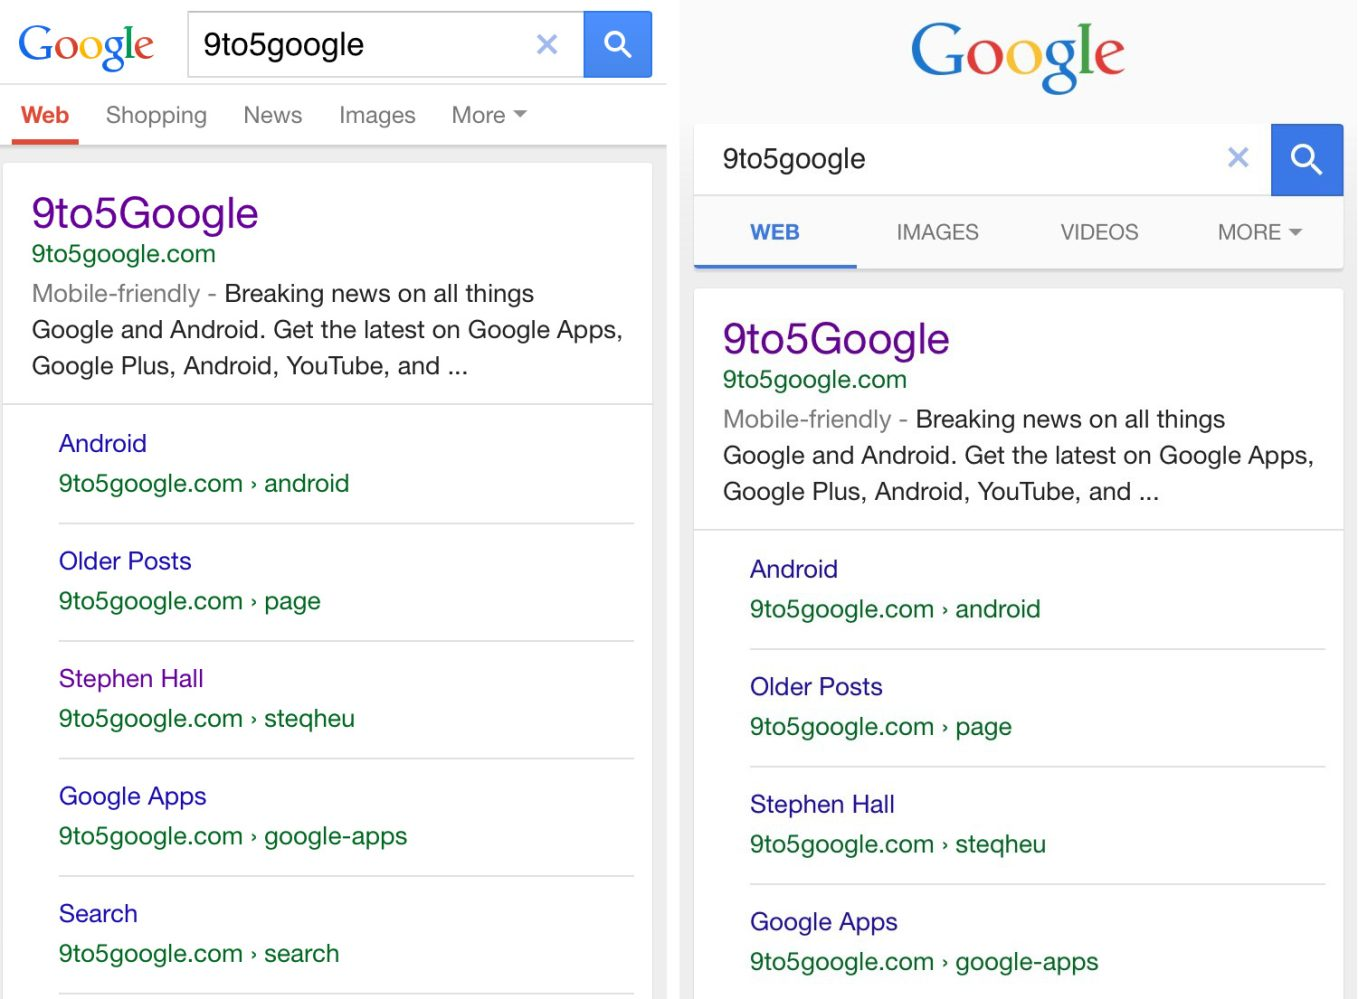 Google testing changes to its mobile search interface, Material Design tabs included